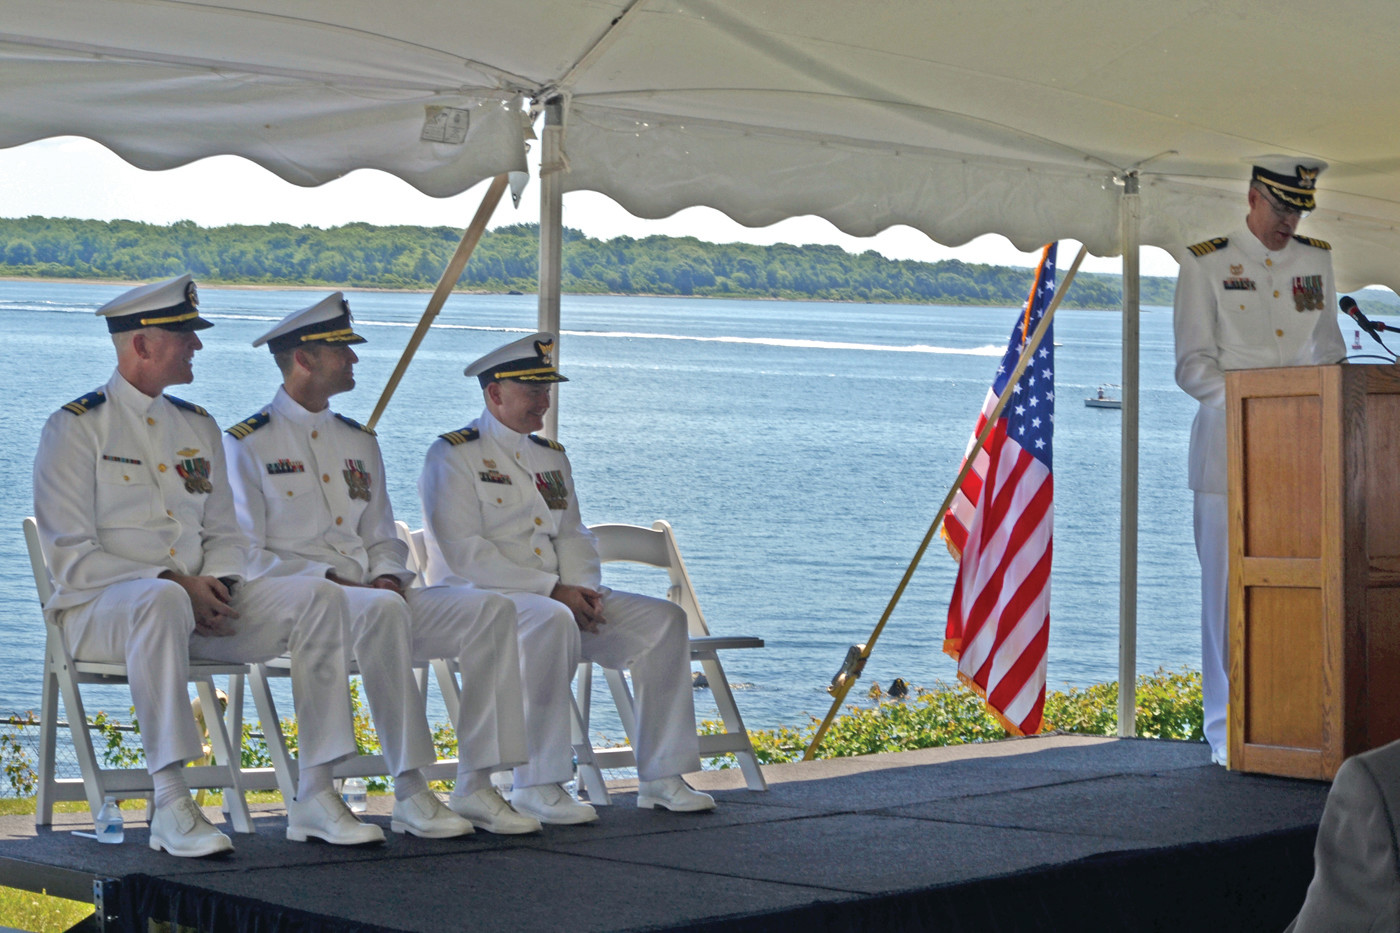 ON THE WATERFRONT: United States Coast Guard officers gathered at Warwick Neck Lighthouse on a picturesque Friday morning for a Change of Command ceremony.